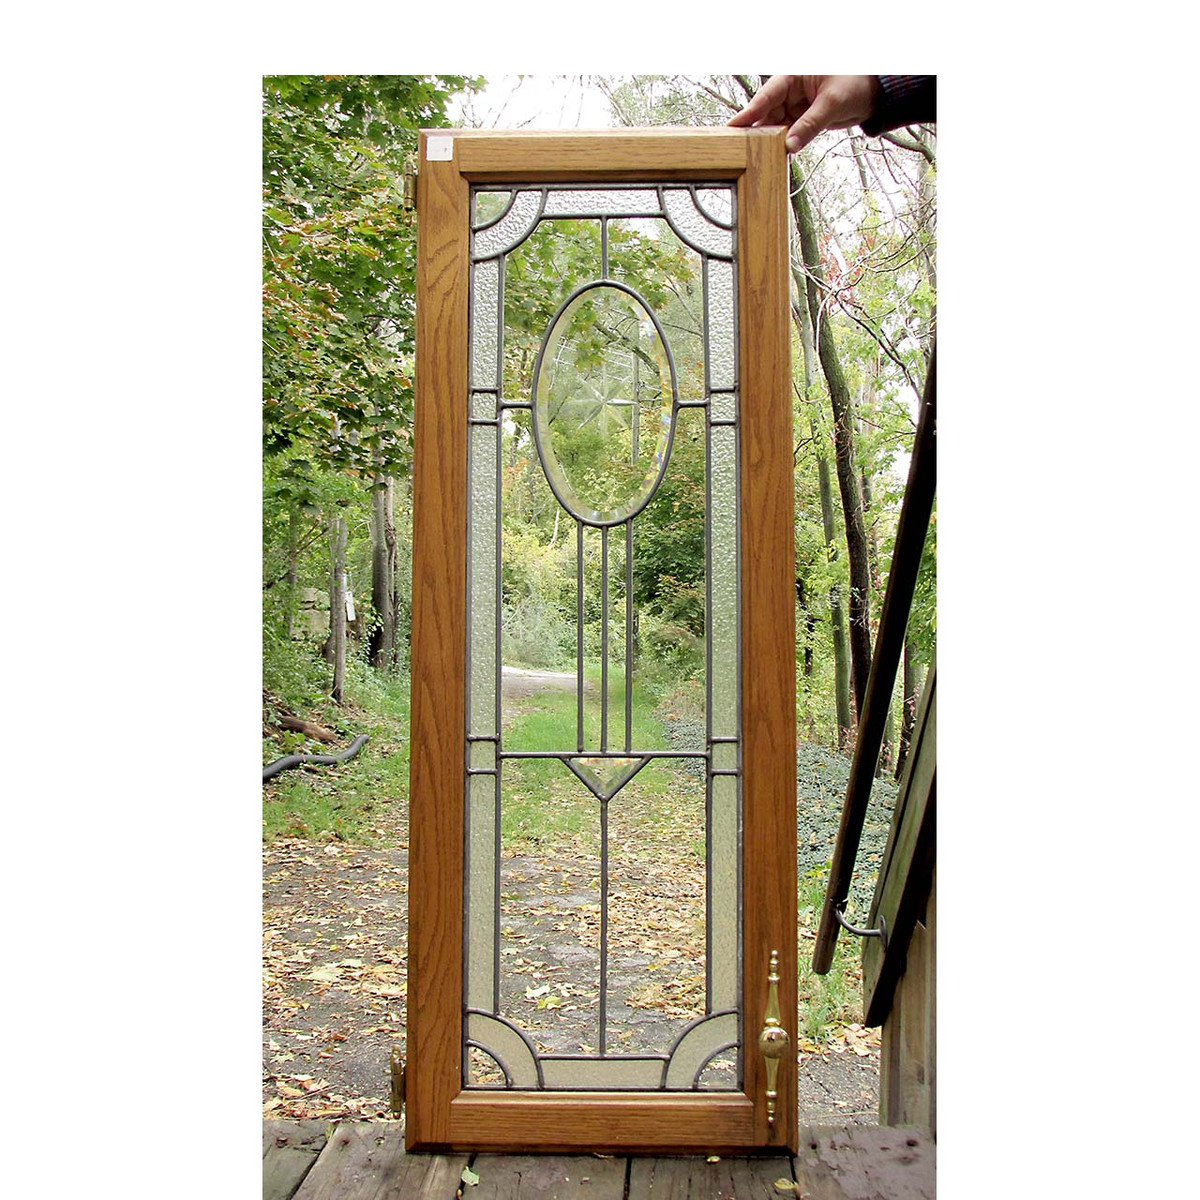 - G16037 - Antique Colonial Revival Beveled Glass Cabinet Door